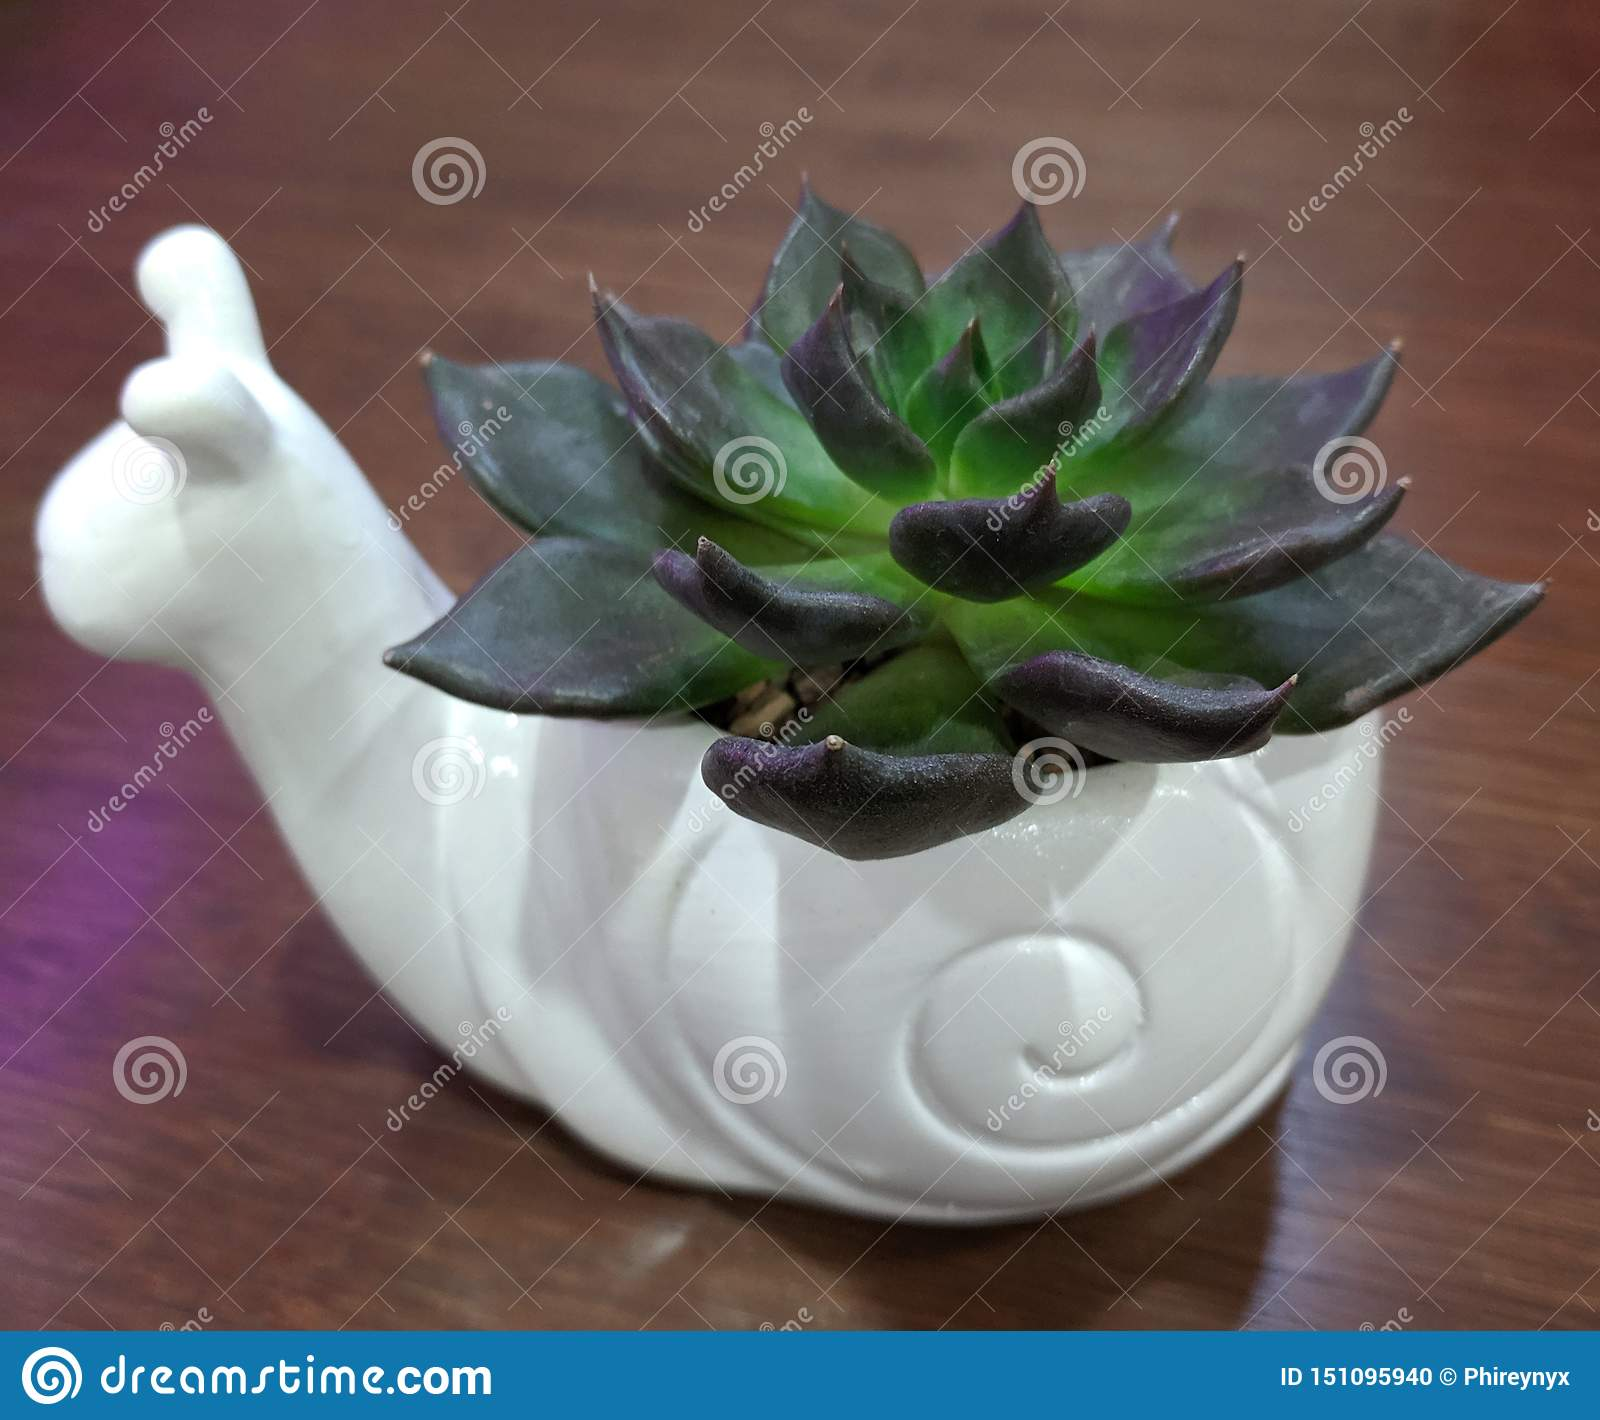 Black prince echeveria in a white snail pot on a warm wood background